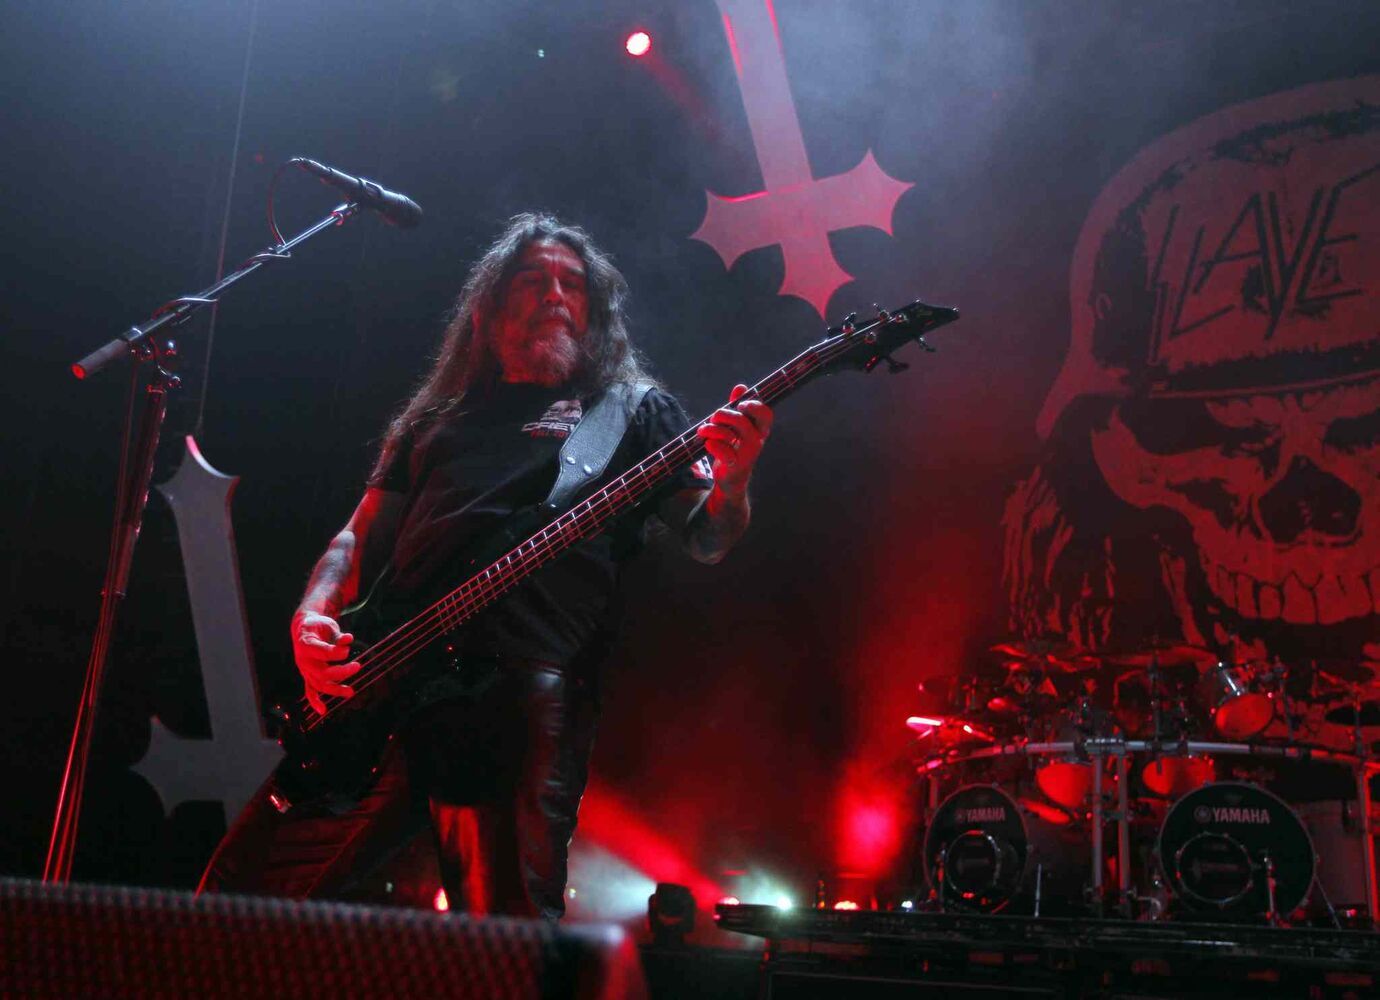 Vocalist/bassist Tom Araya delivers a riff.